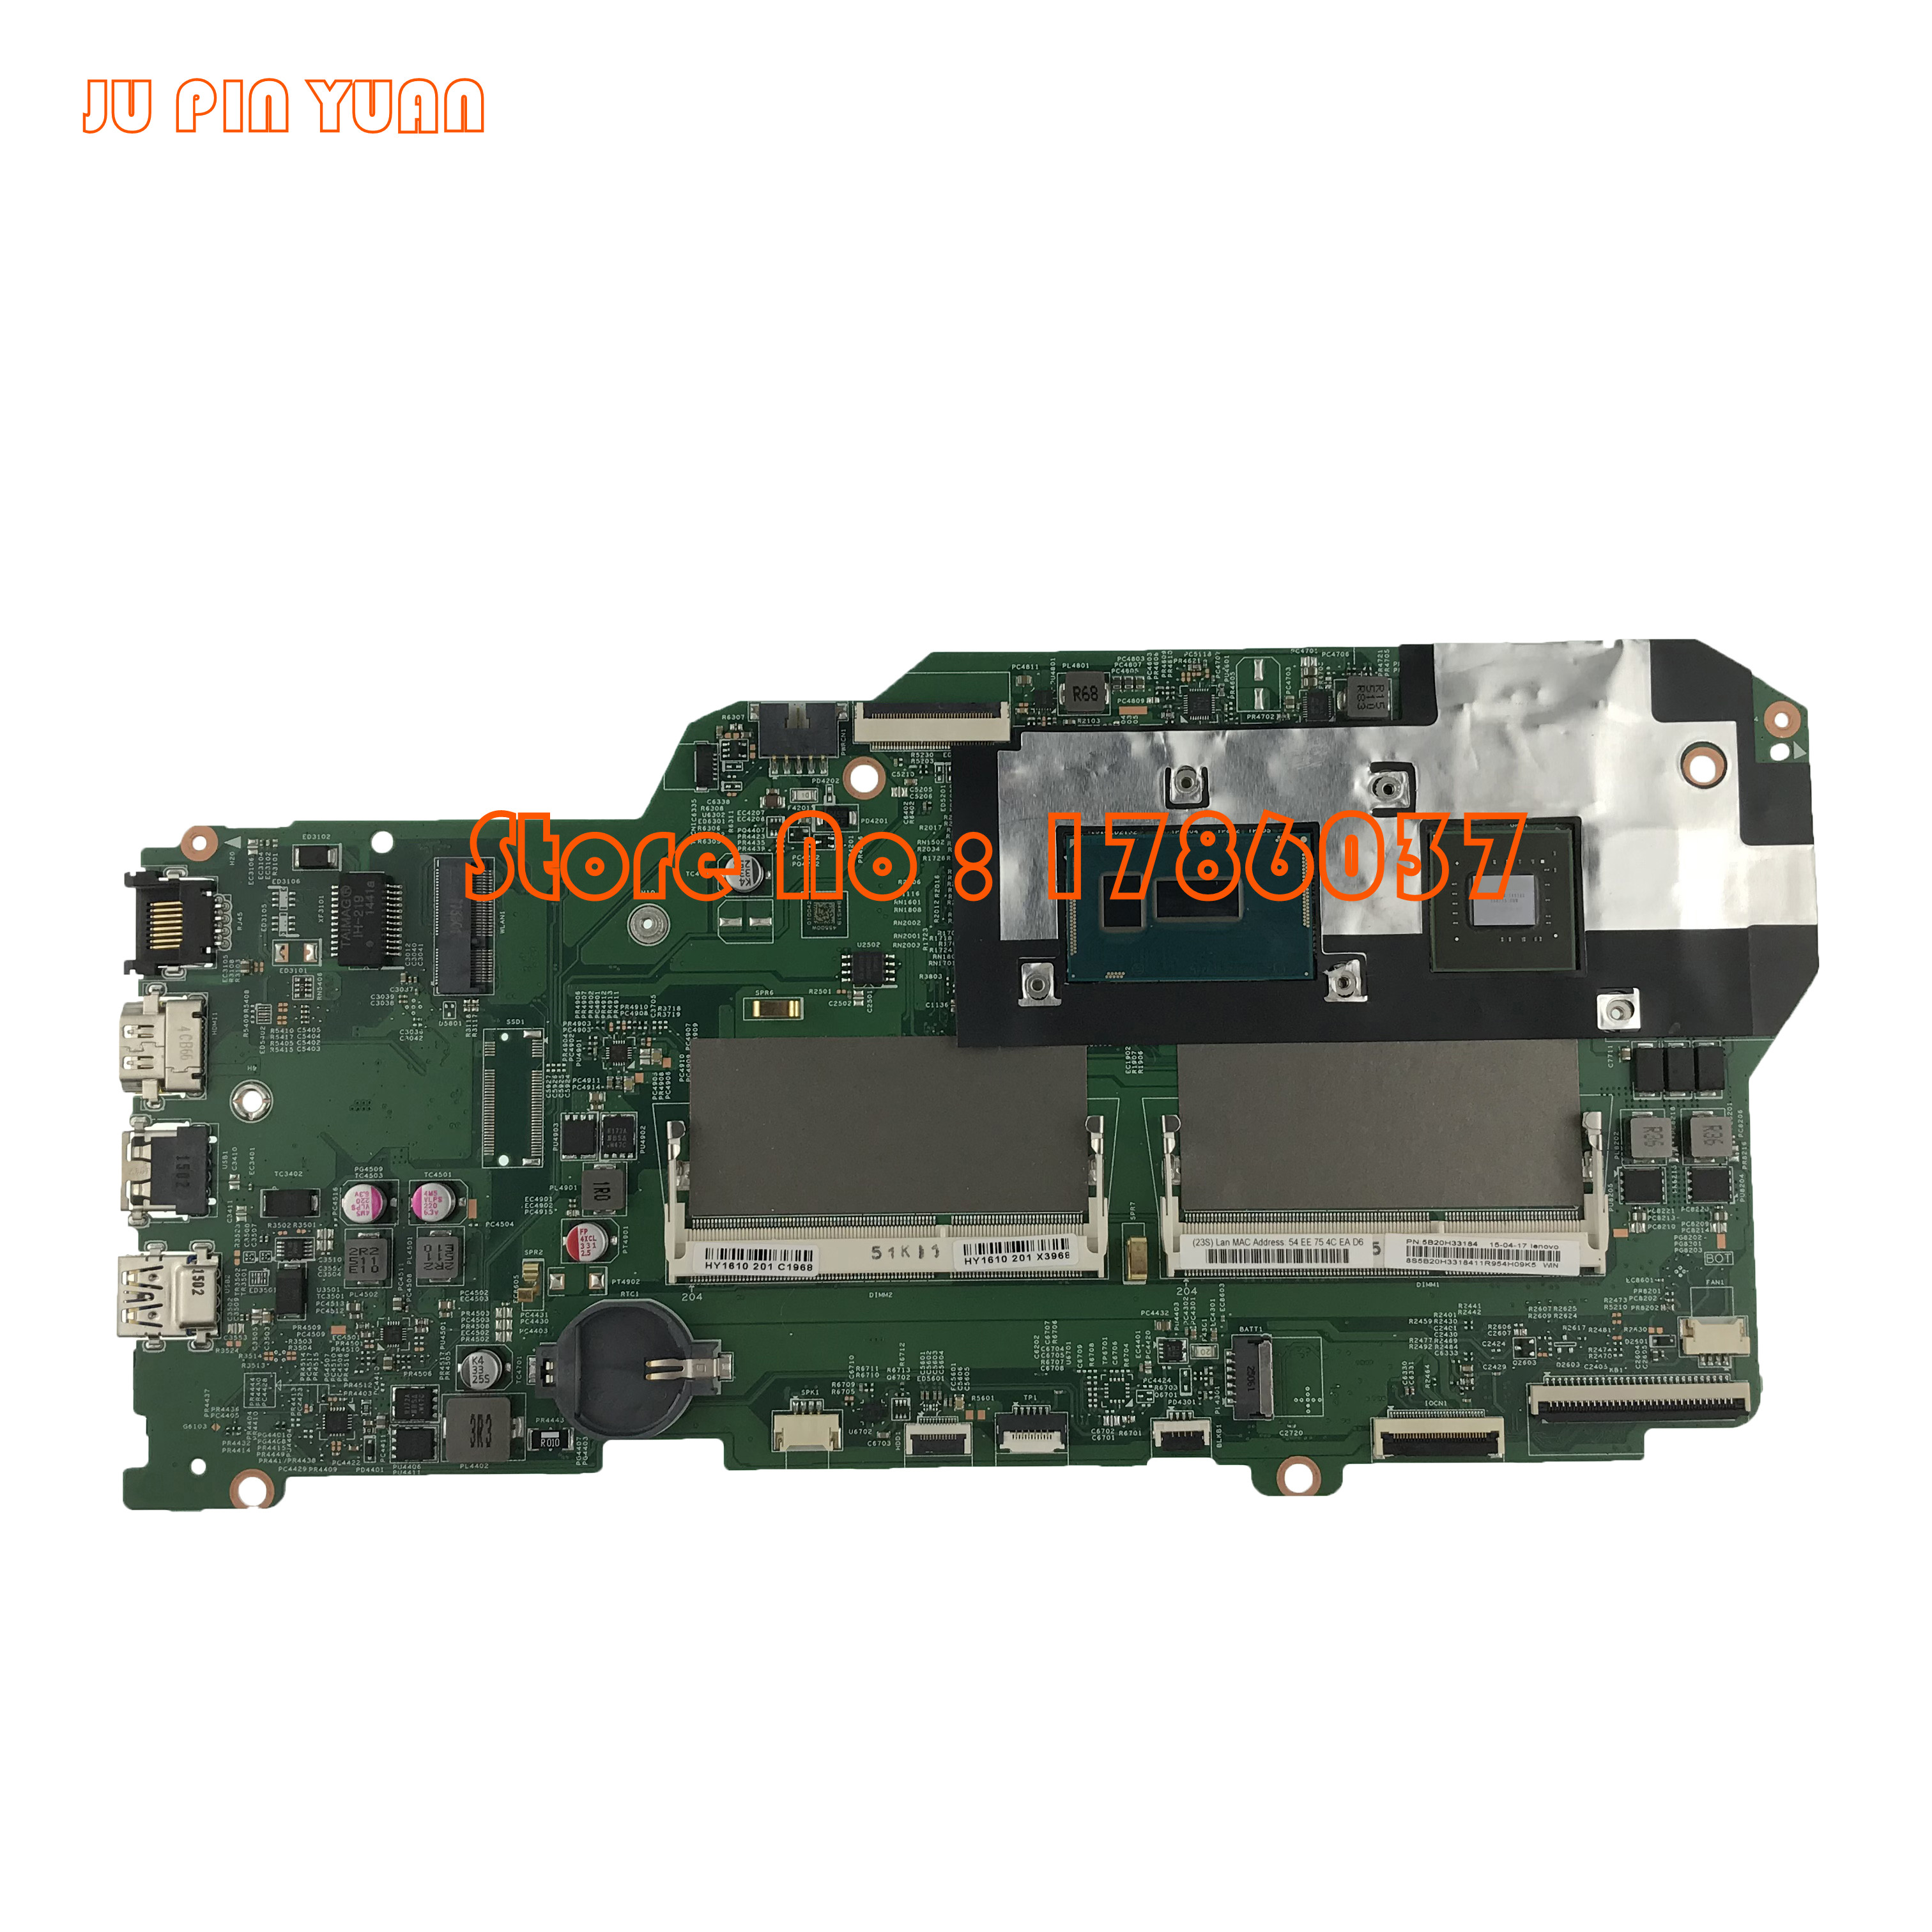 JU PIN YUAN 448.03G01.0011 5B20H33184 13286-1 Mainboard For Lenovo Flex 2 Pro Edge 15 Motherboard With I7-5500U CPU 840M 2GB